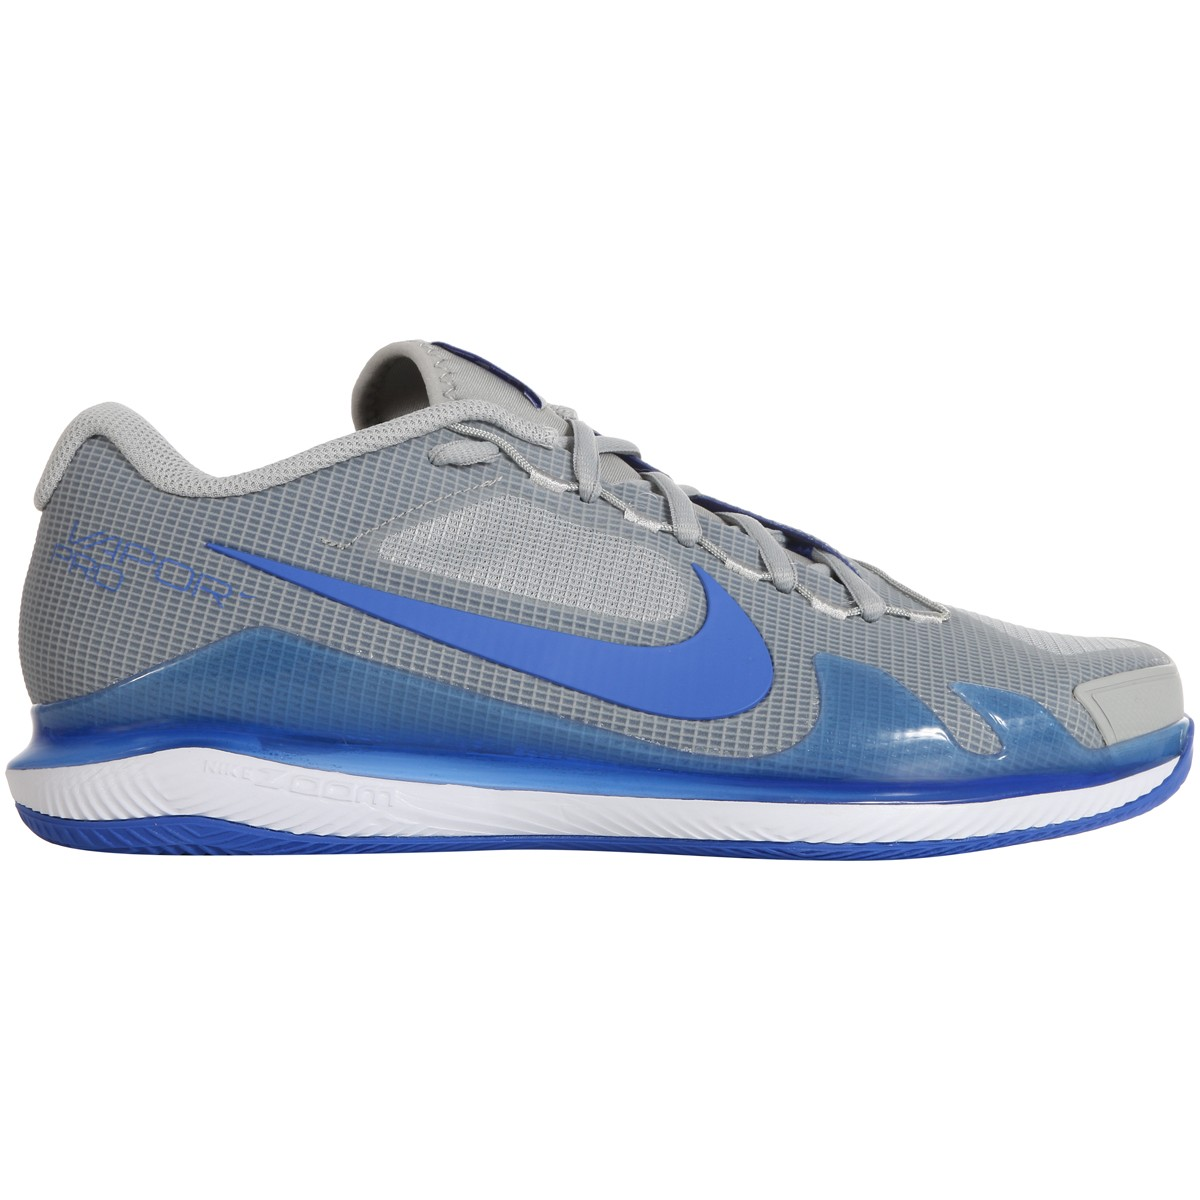 Chaussures Nike Air Zoom Vapor Pro Terre Battue - Chaussures ...